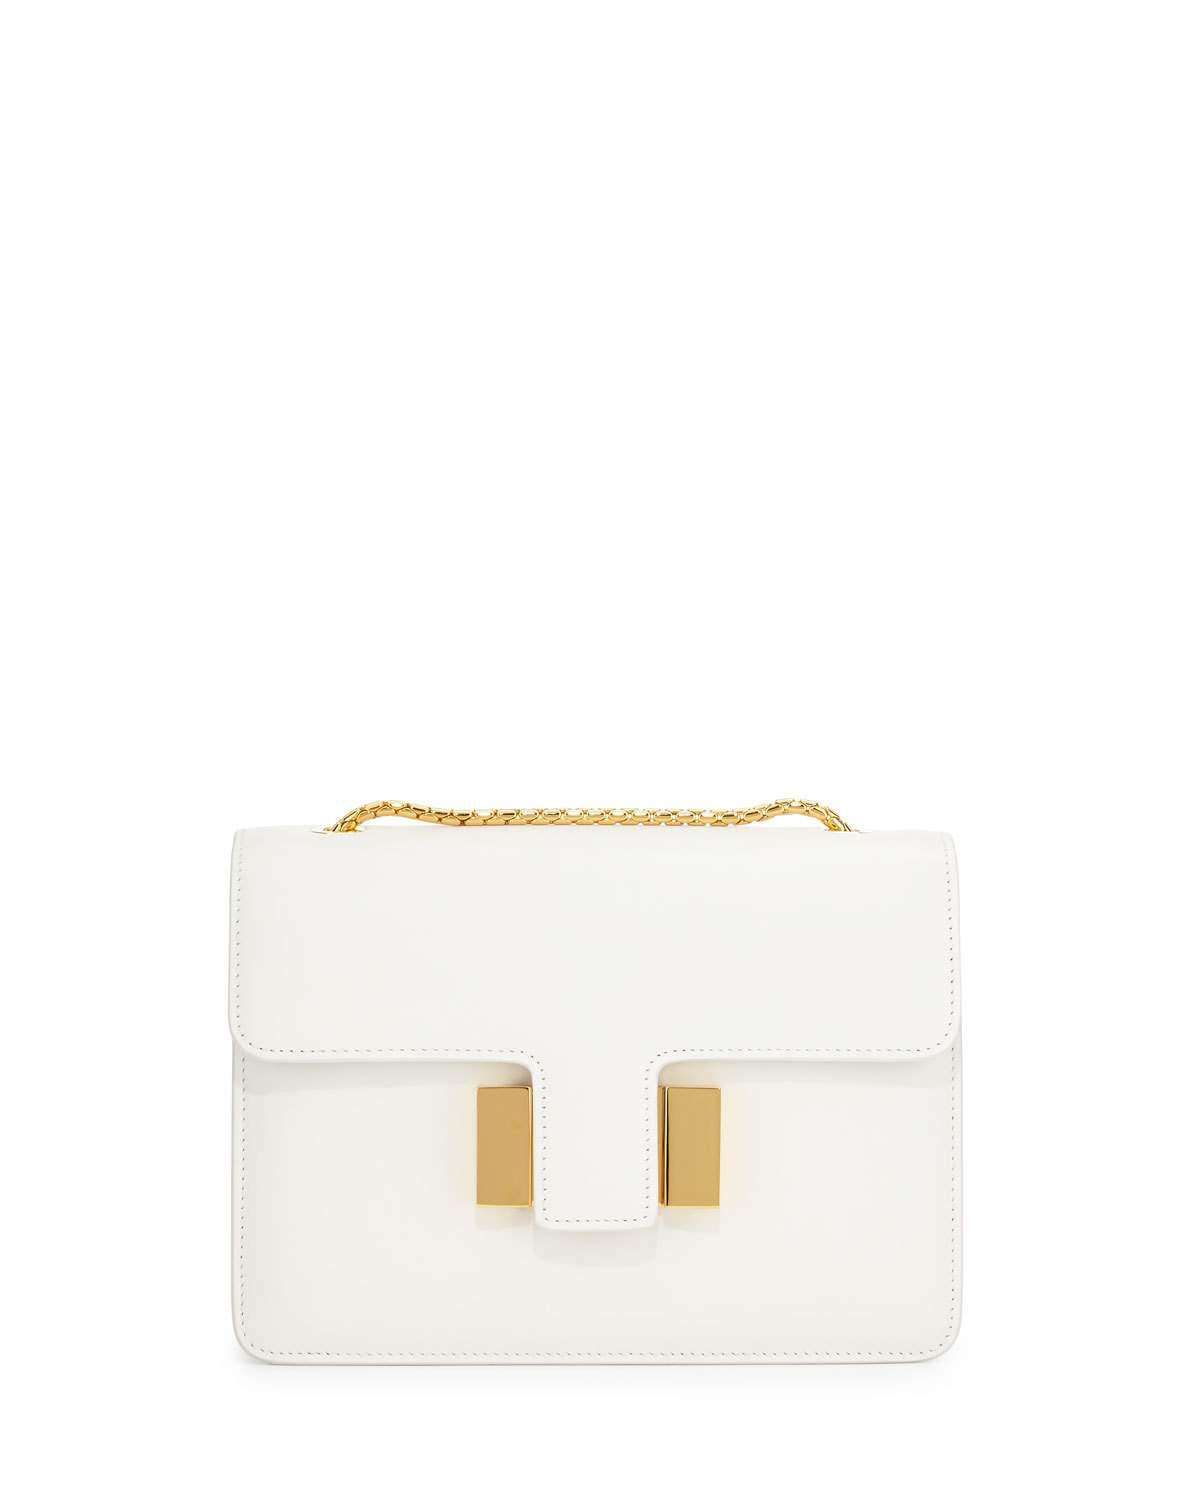 Lyst - Tom Ford Sienna Medium T-Buckle Shoulder Bag in White b1f067d9d3313